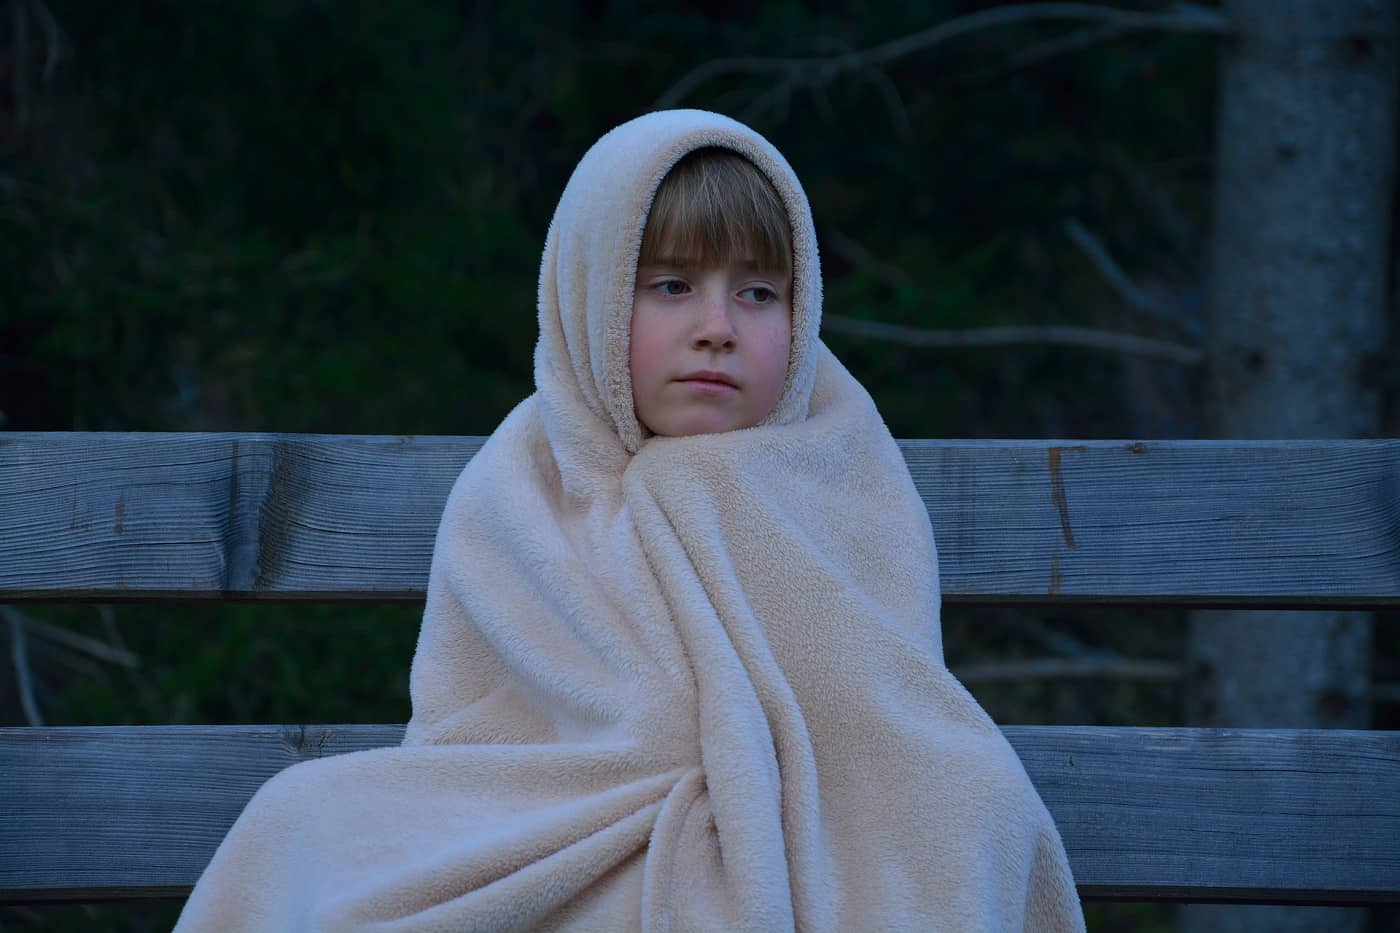 Young child wrapped up in blanket - Cut the cords